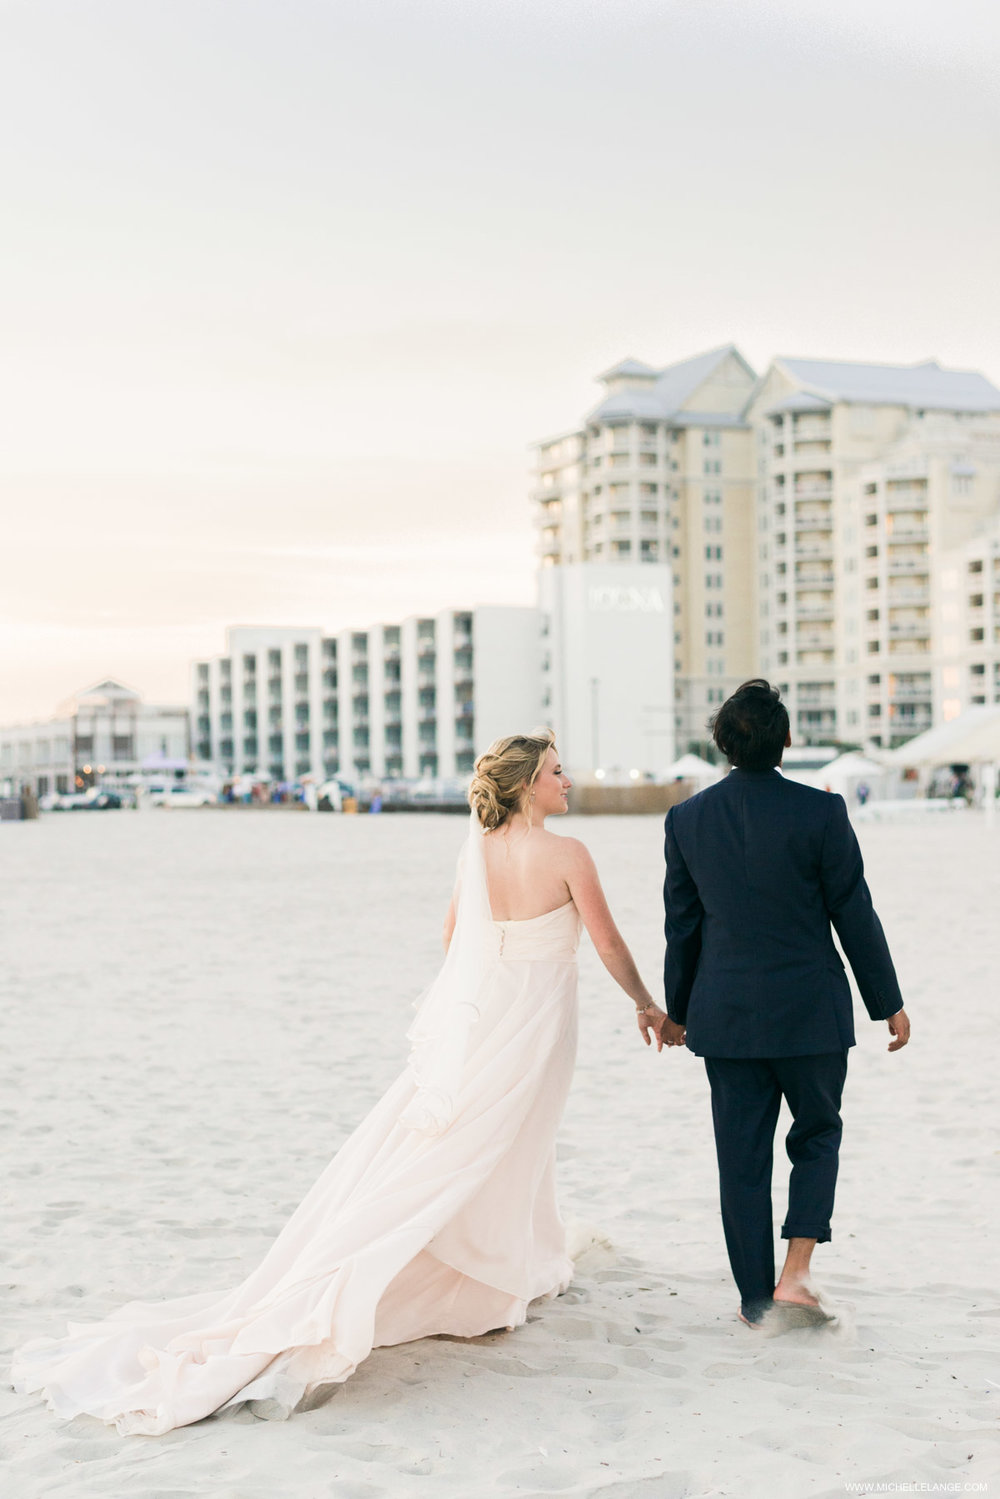 Hotel Icona Diamond Beach Wedding Photographer in Cape May NJ